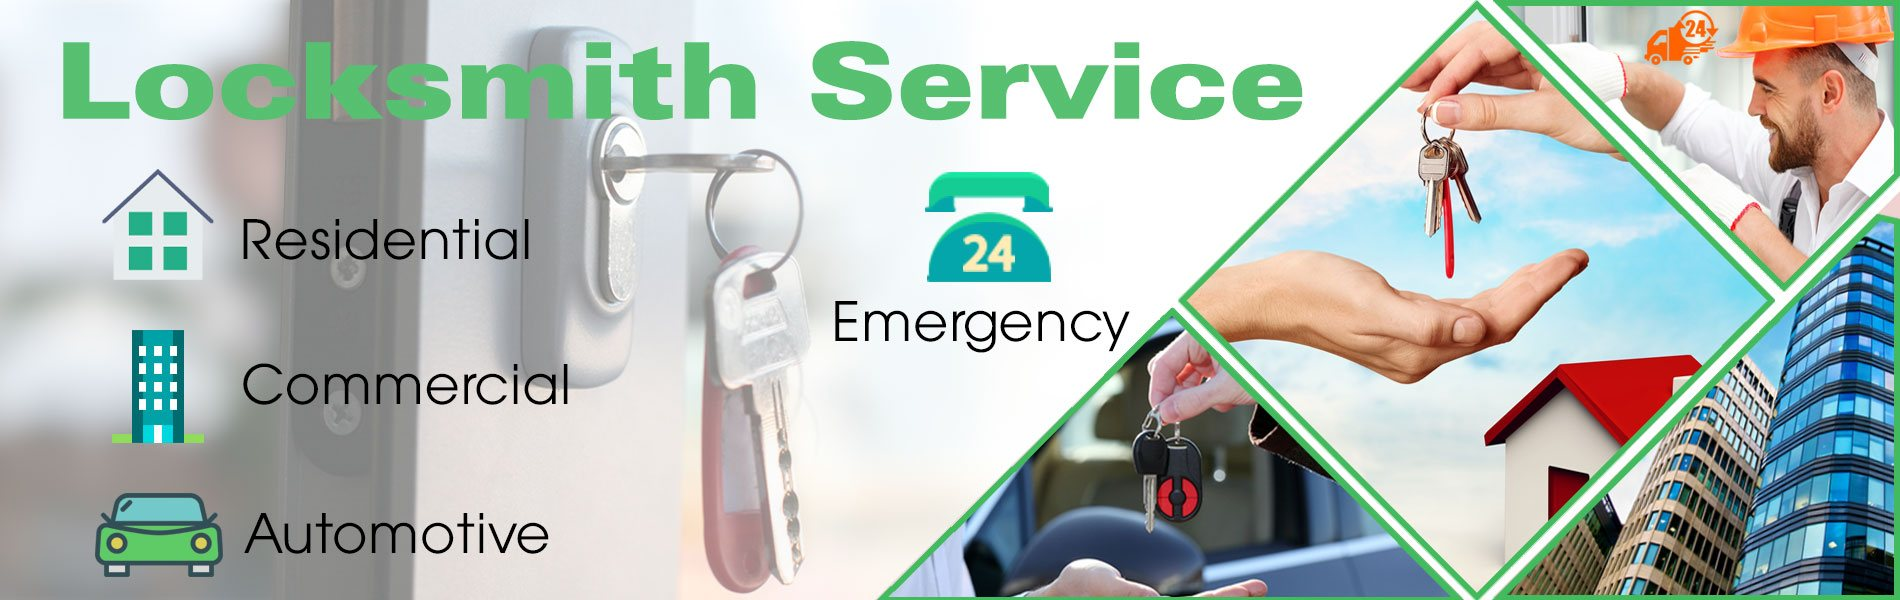 Lock Safe Services Overland Park, KS 913-364-2668